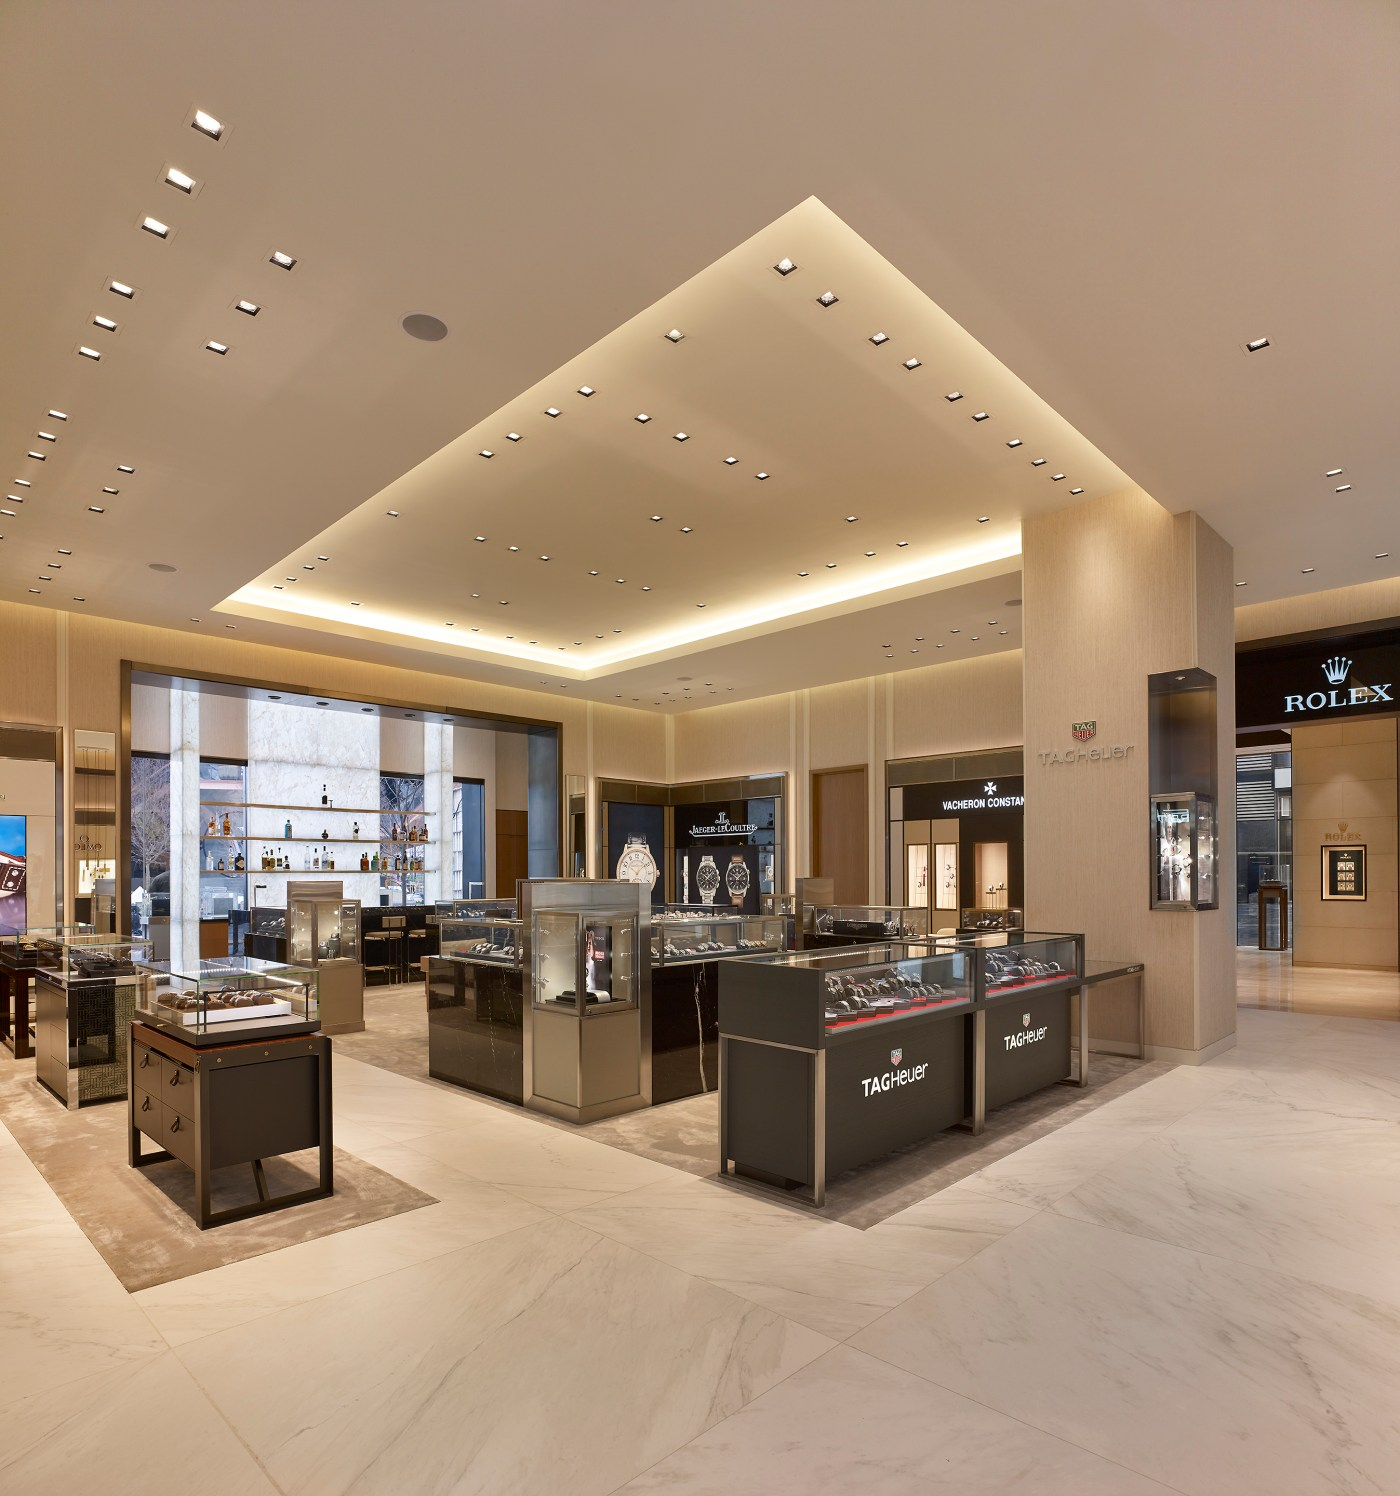 Watches of Switzerland Hudson Yards interior